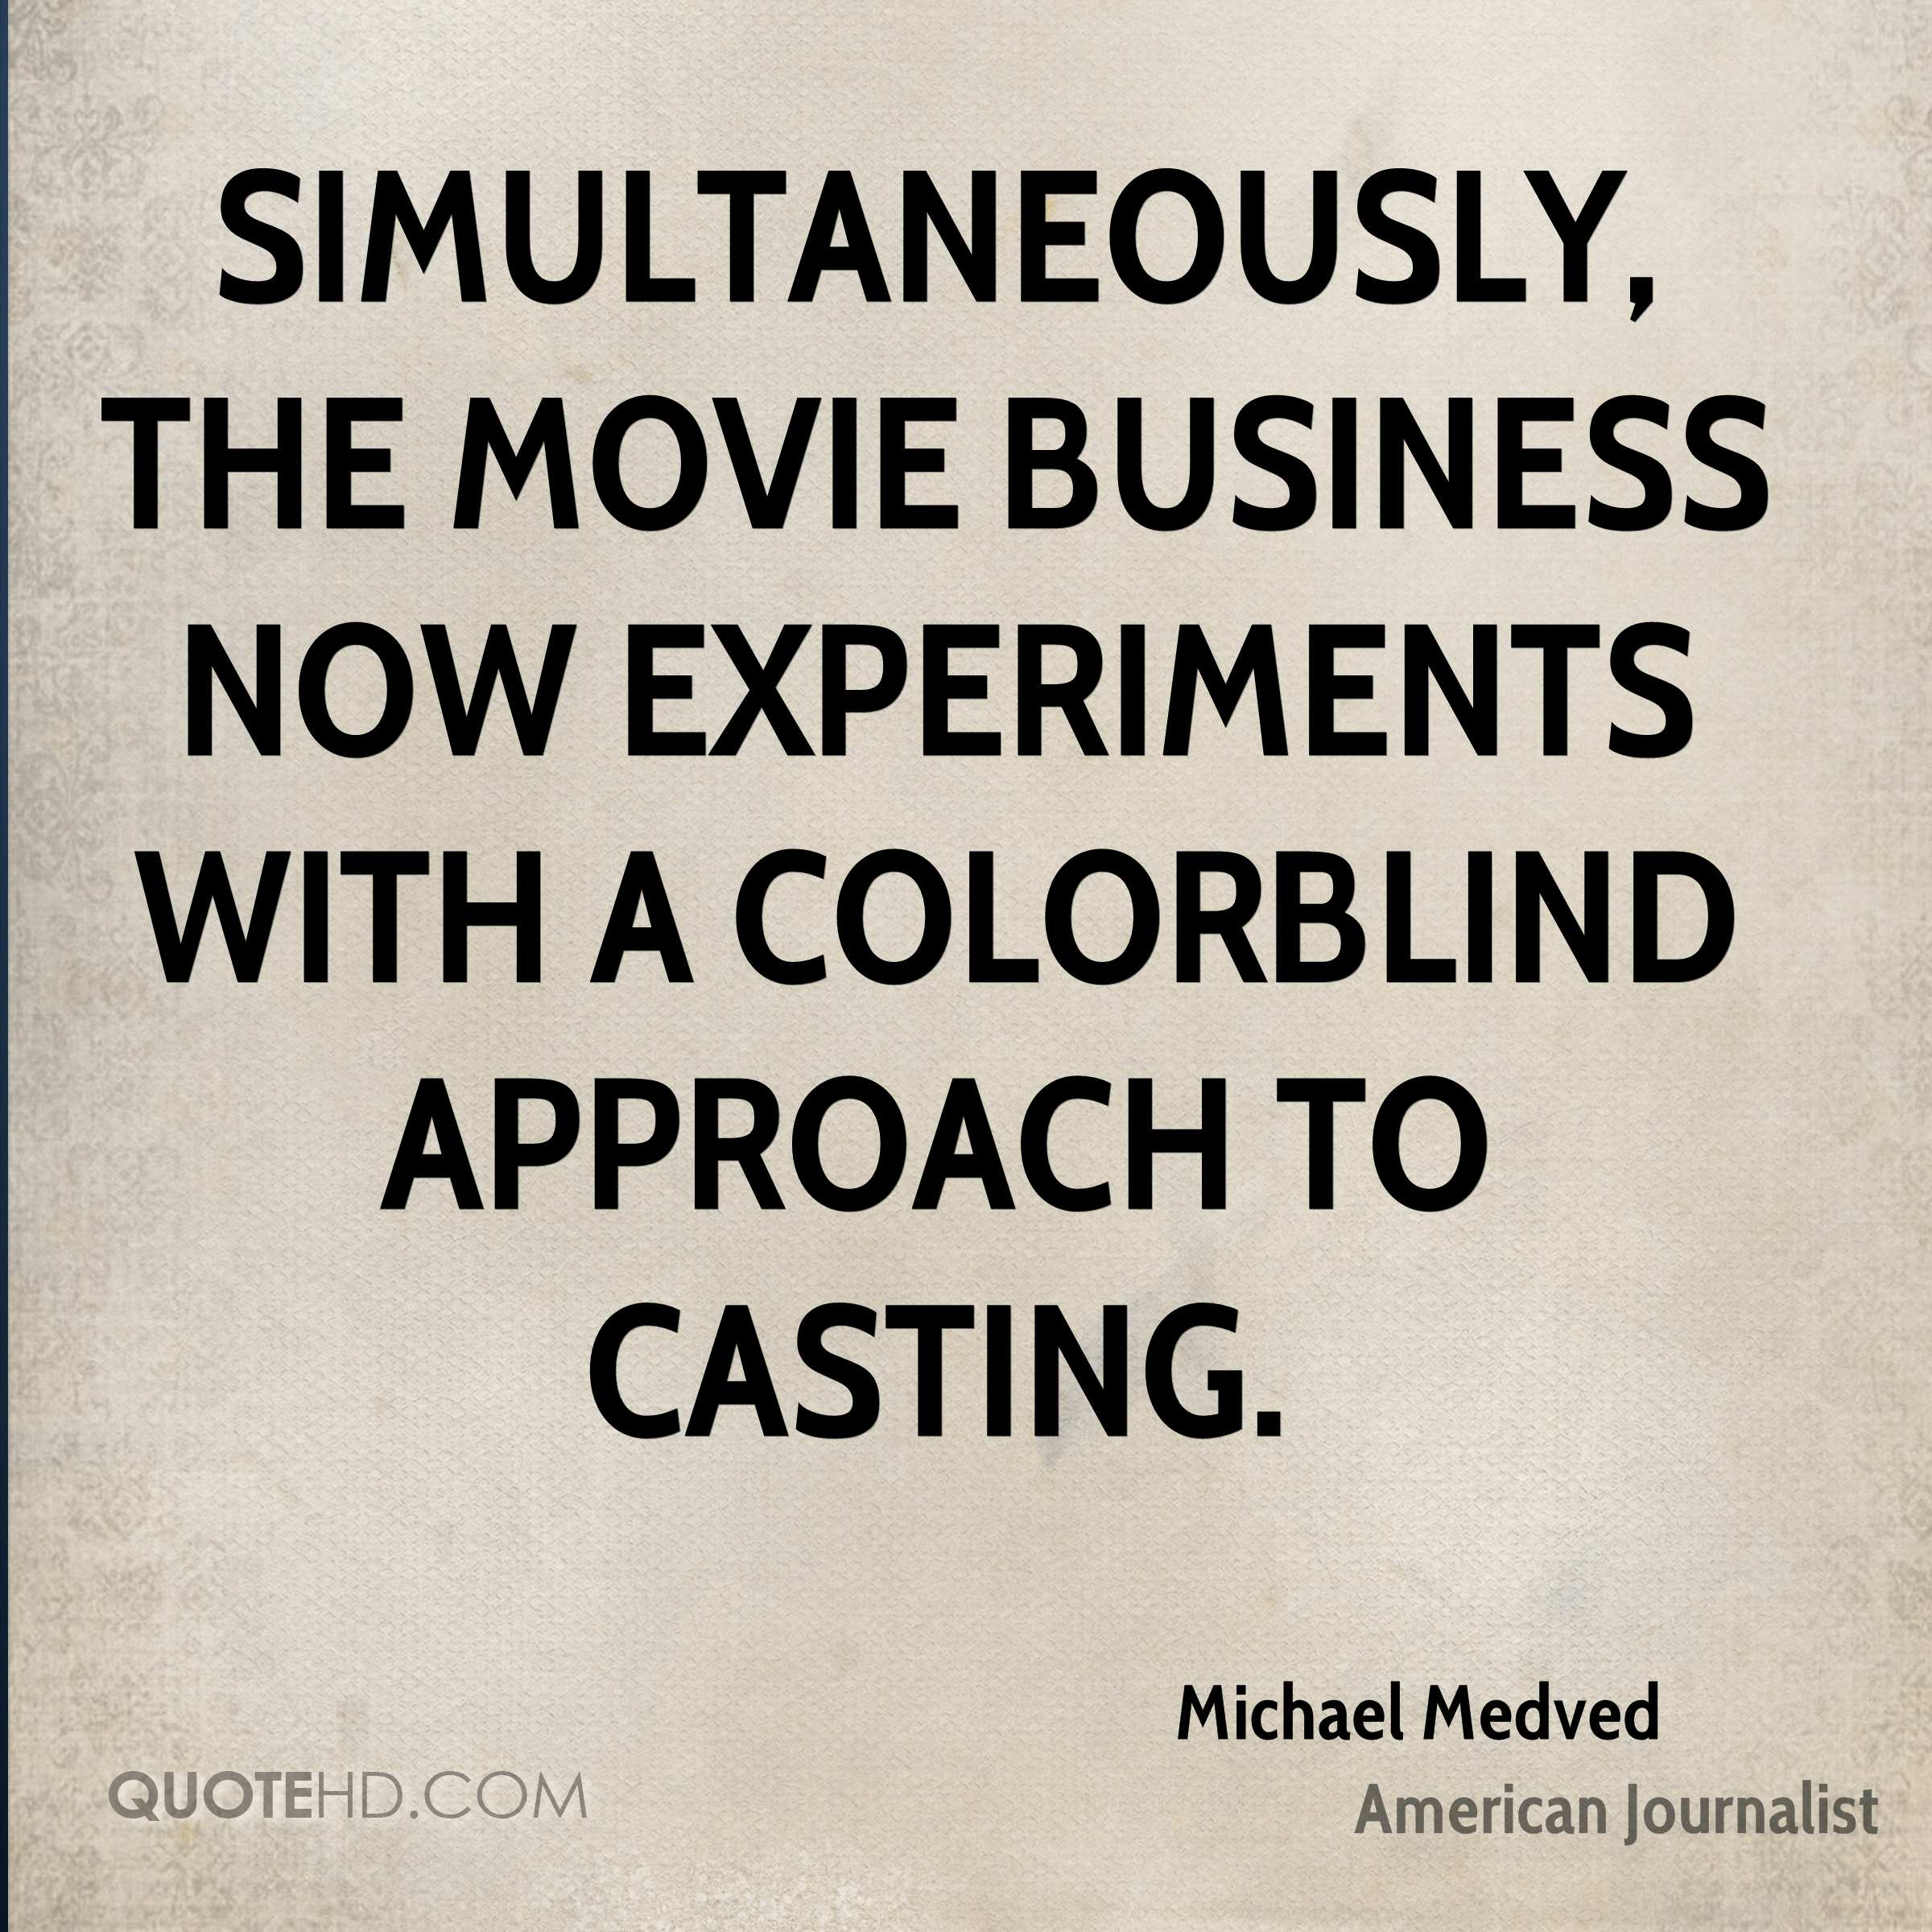 Simultaneously, the movie business now experiments with a colorblind approach to casting.